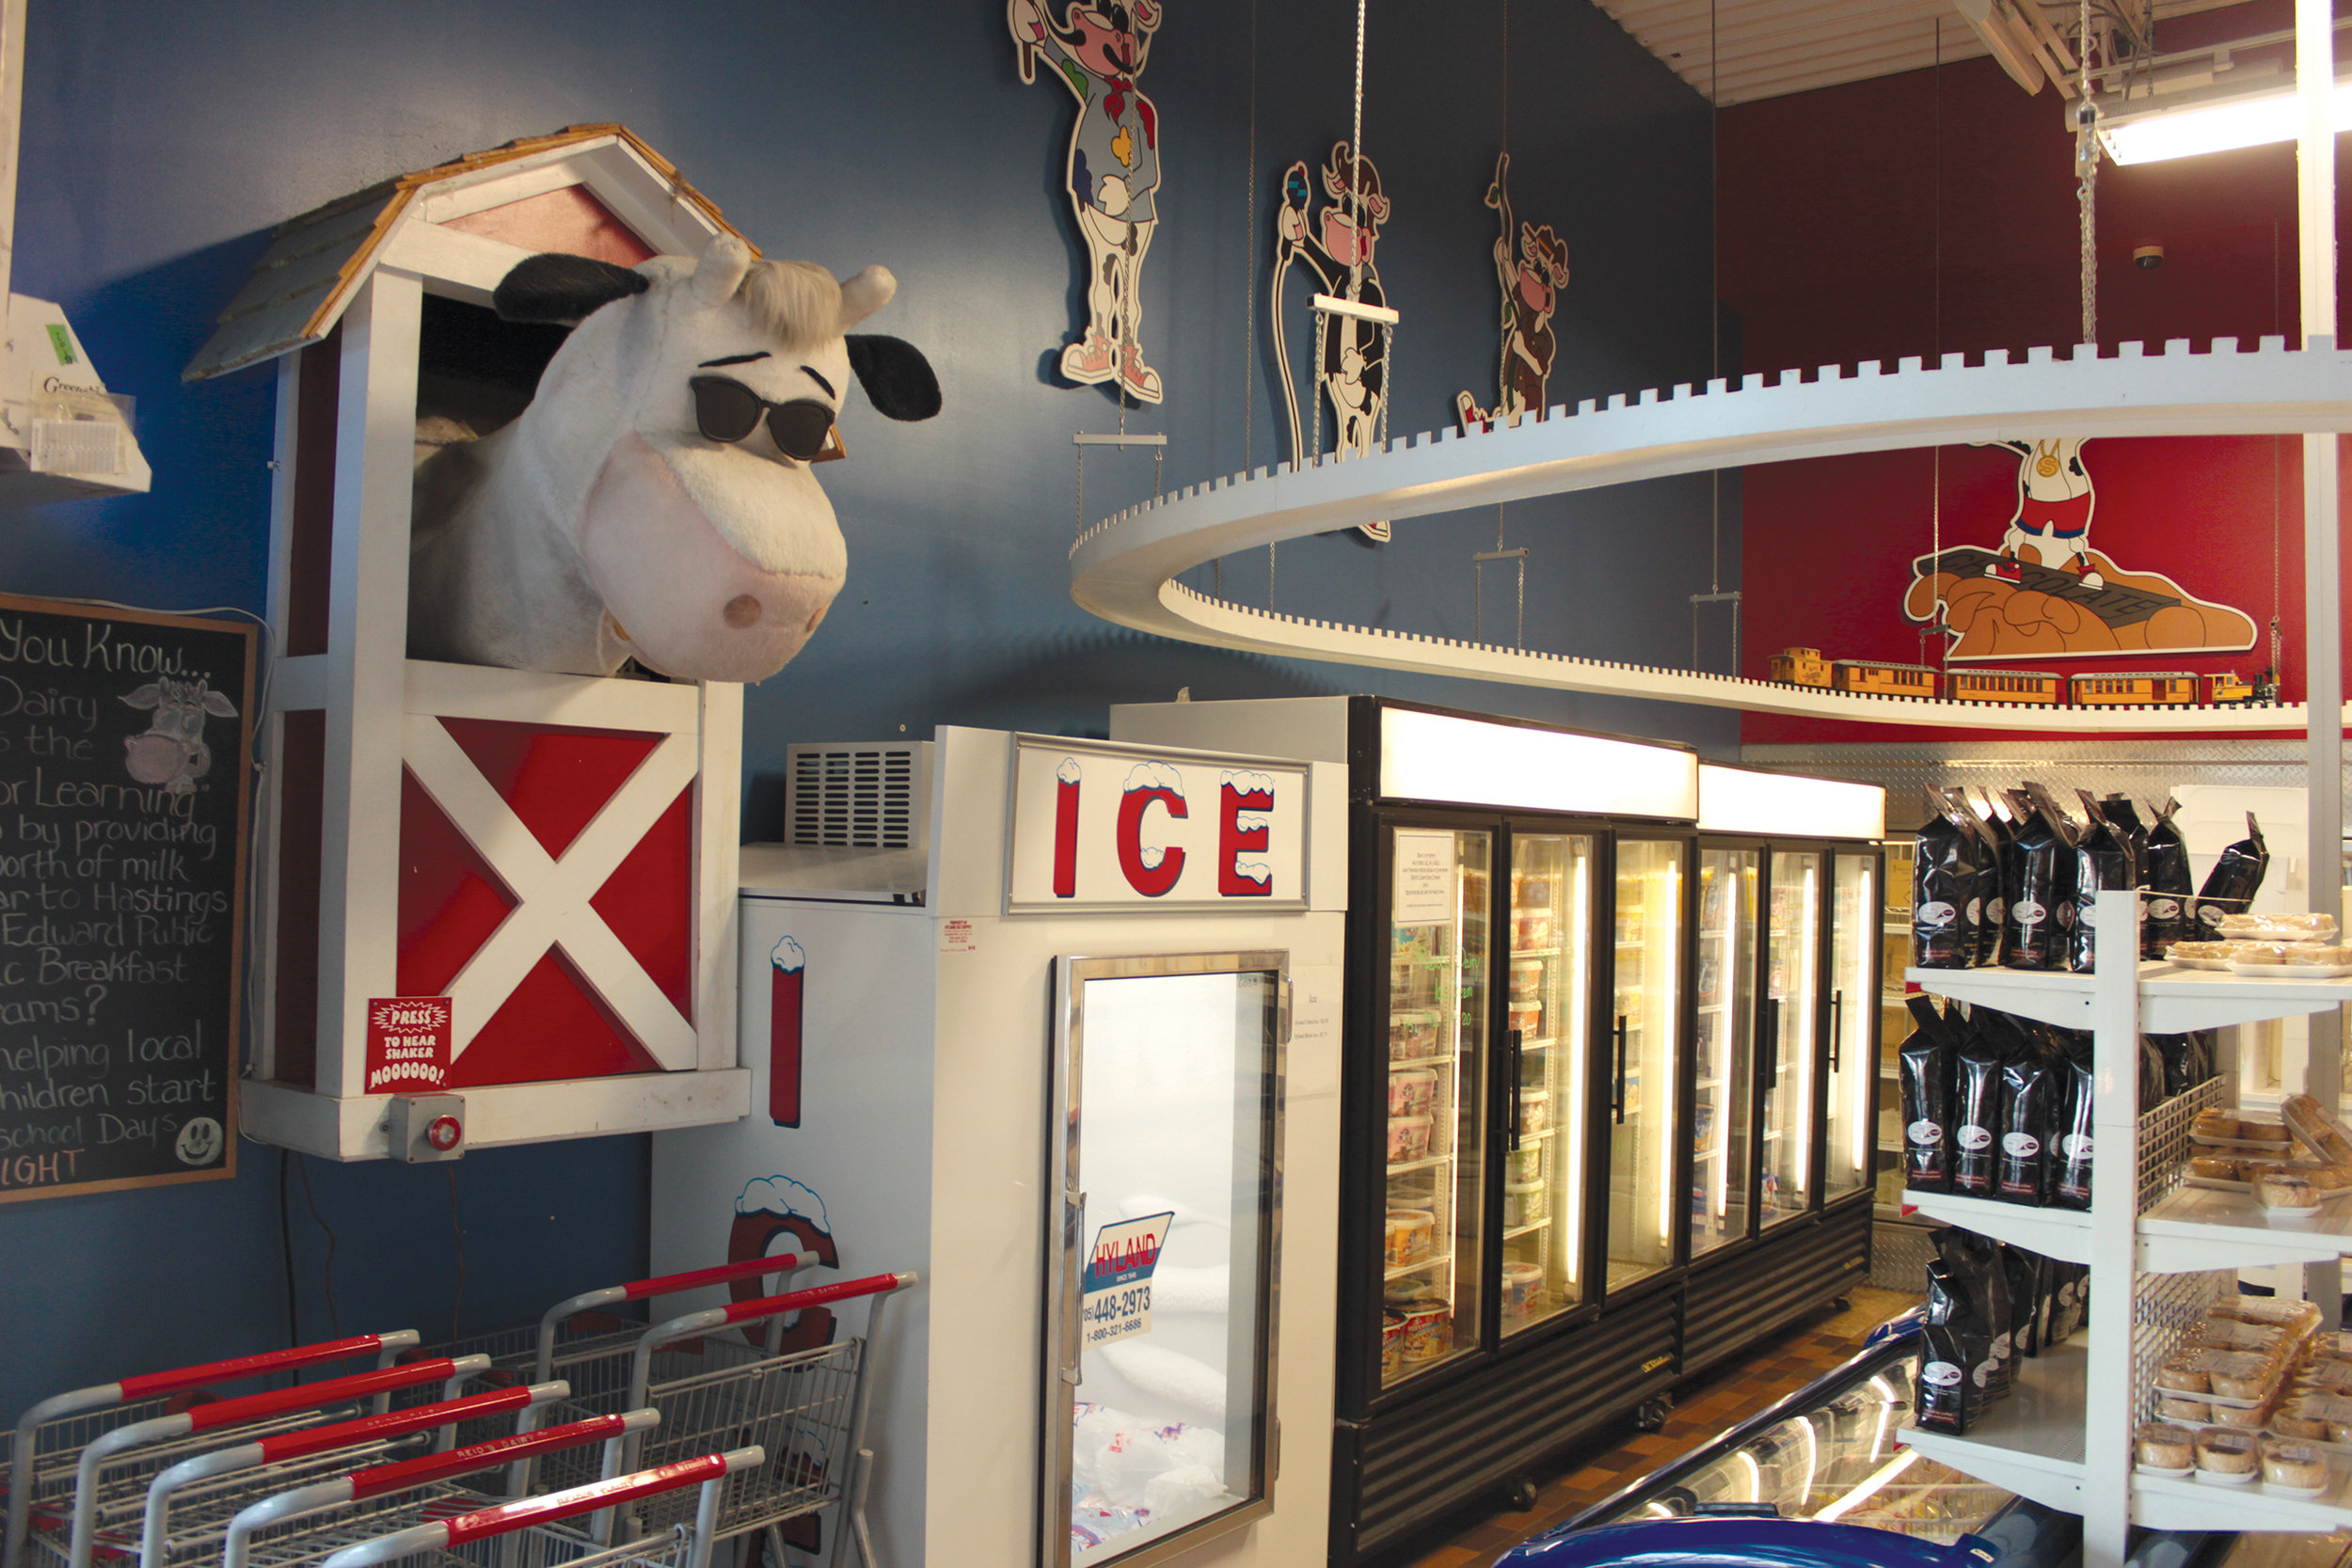 The Infamous Mooing Cow and Train track display at Reid's Dairy is always a hit with the kids and those young at heart. Photo by James Kerr.